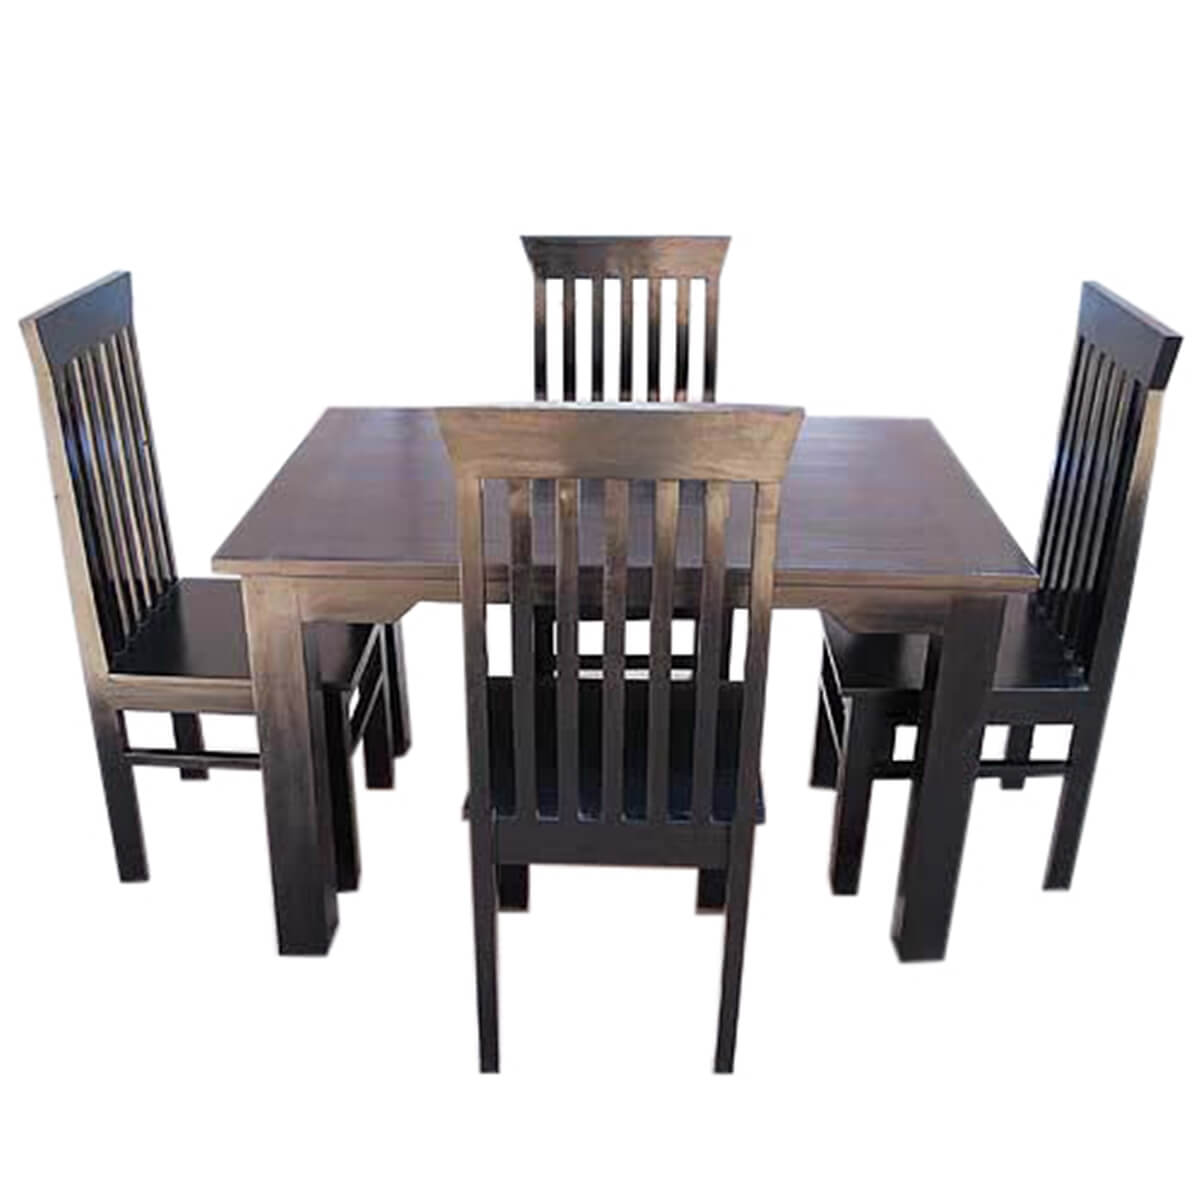 Contemporary lincoln kitchen dining room table chairs set for Kitchen dining room furniture